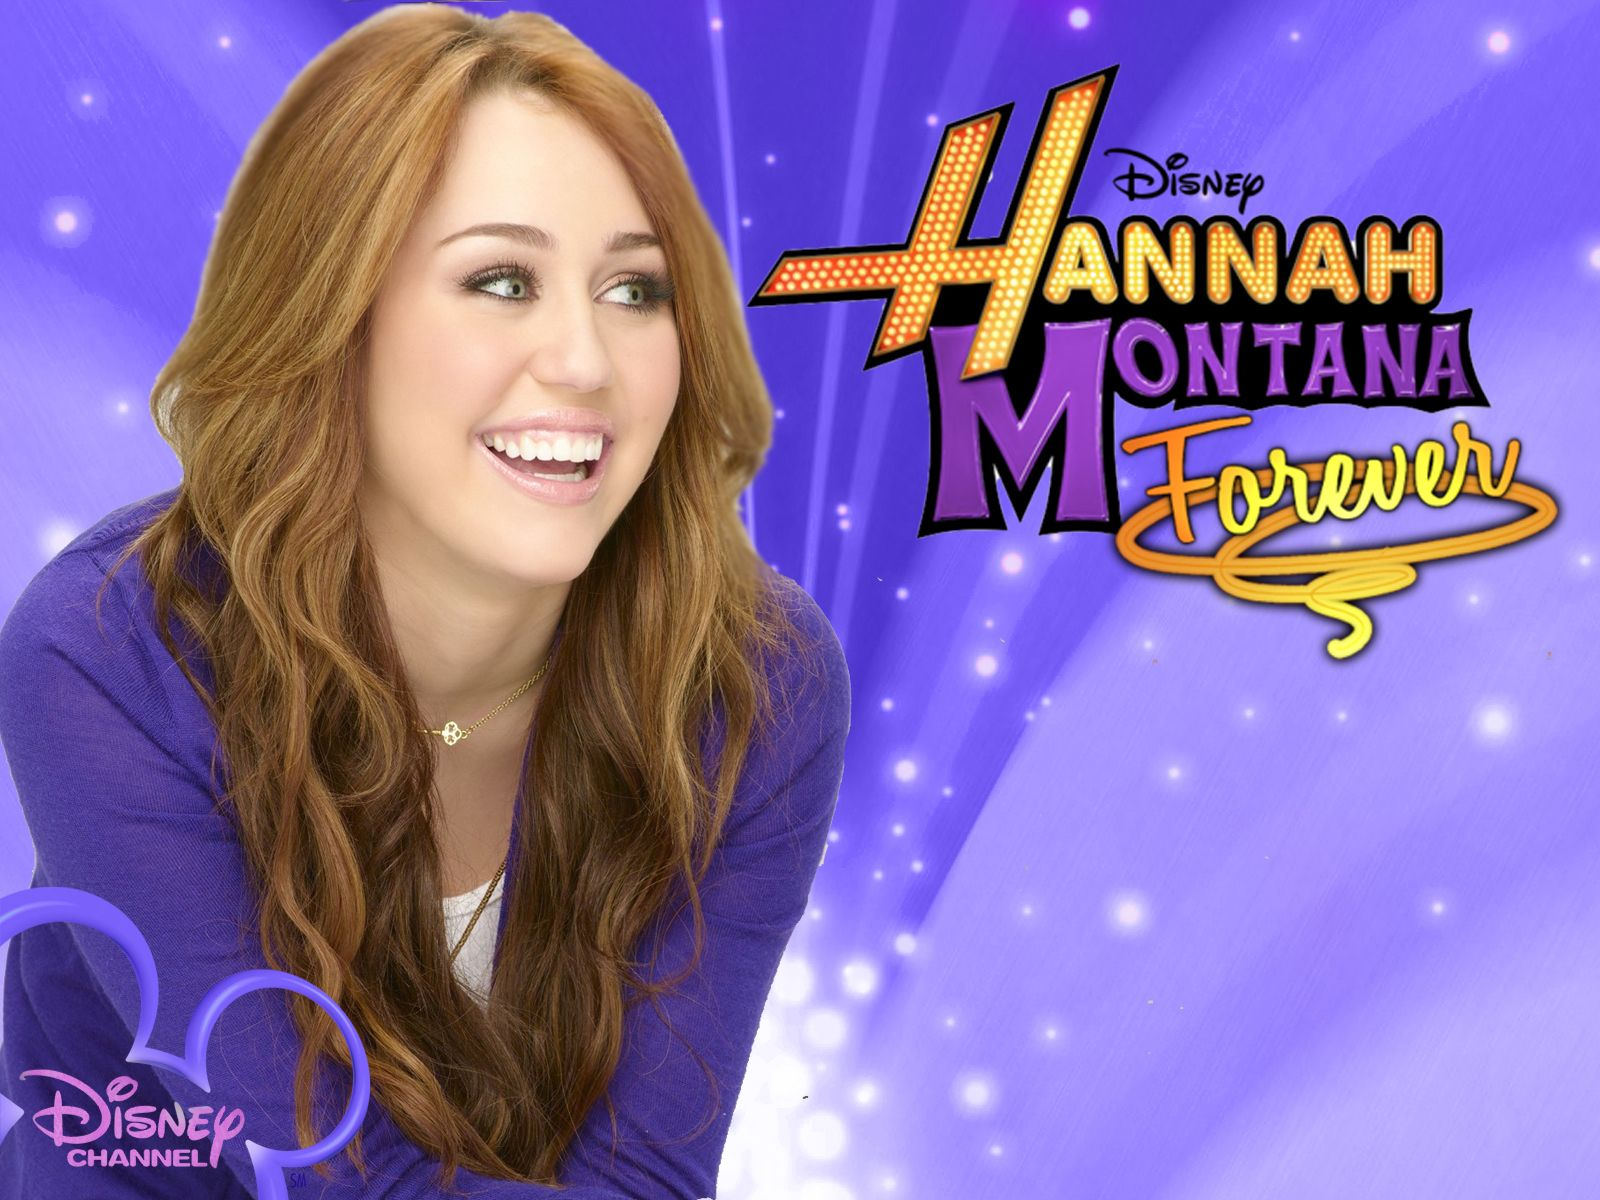 Miley Cyrus Bedroom Wallpaper What Happend To The Forever In Hannah Montana Forever Lol Have A